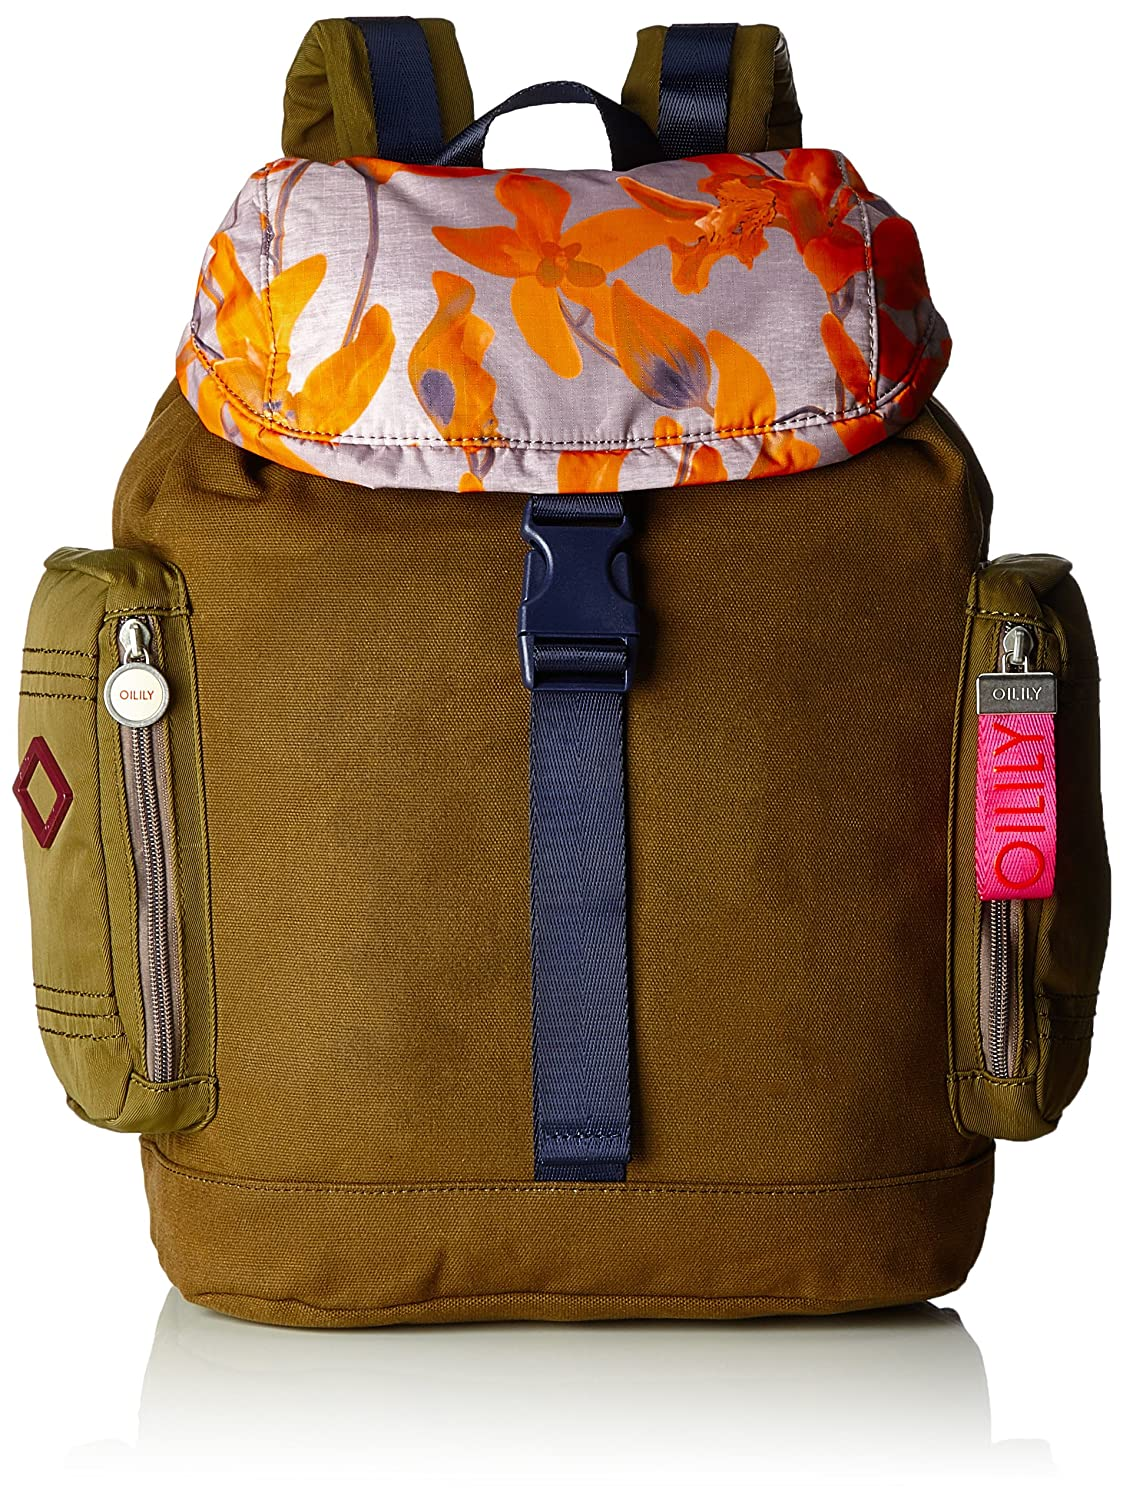 Oilily - Whoopy Backpack Lvf, Mochilas Mujer, Braun (Mud), 16.5x44x30 cm (B x H T): Amazon.es: Zapatos y complementos